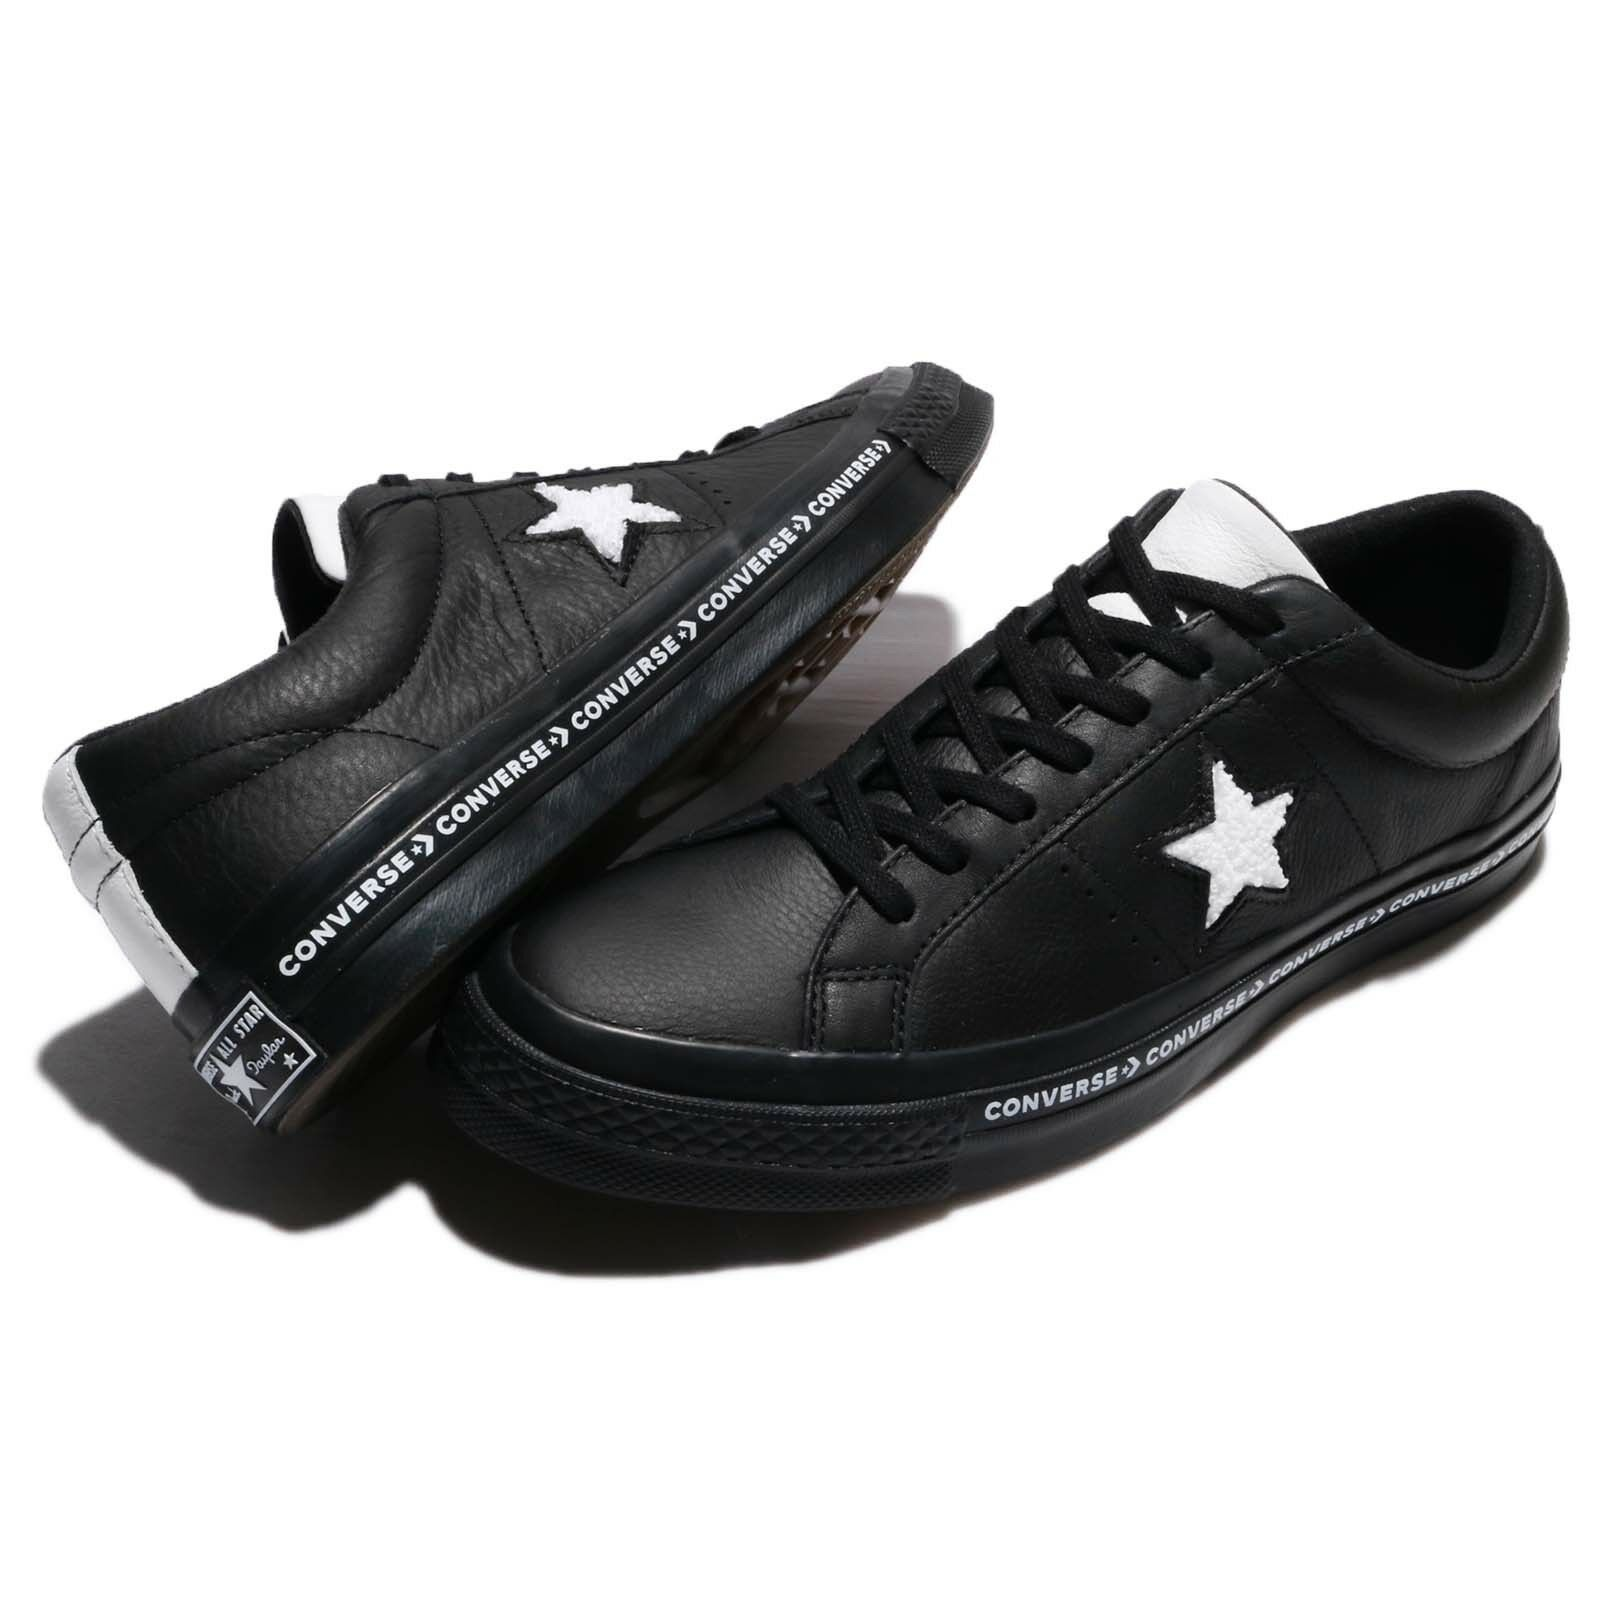 Converse One Star Terry Leather Men shoes Sneakers Trainers Black White 159721C